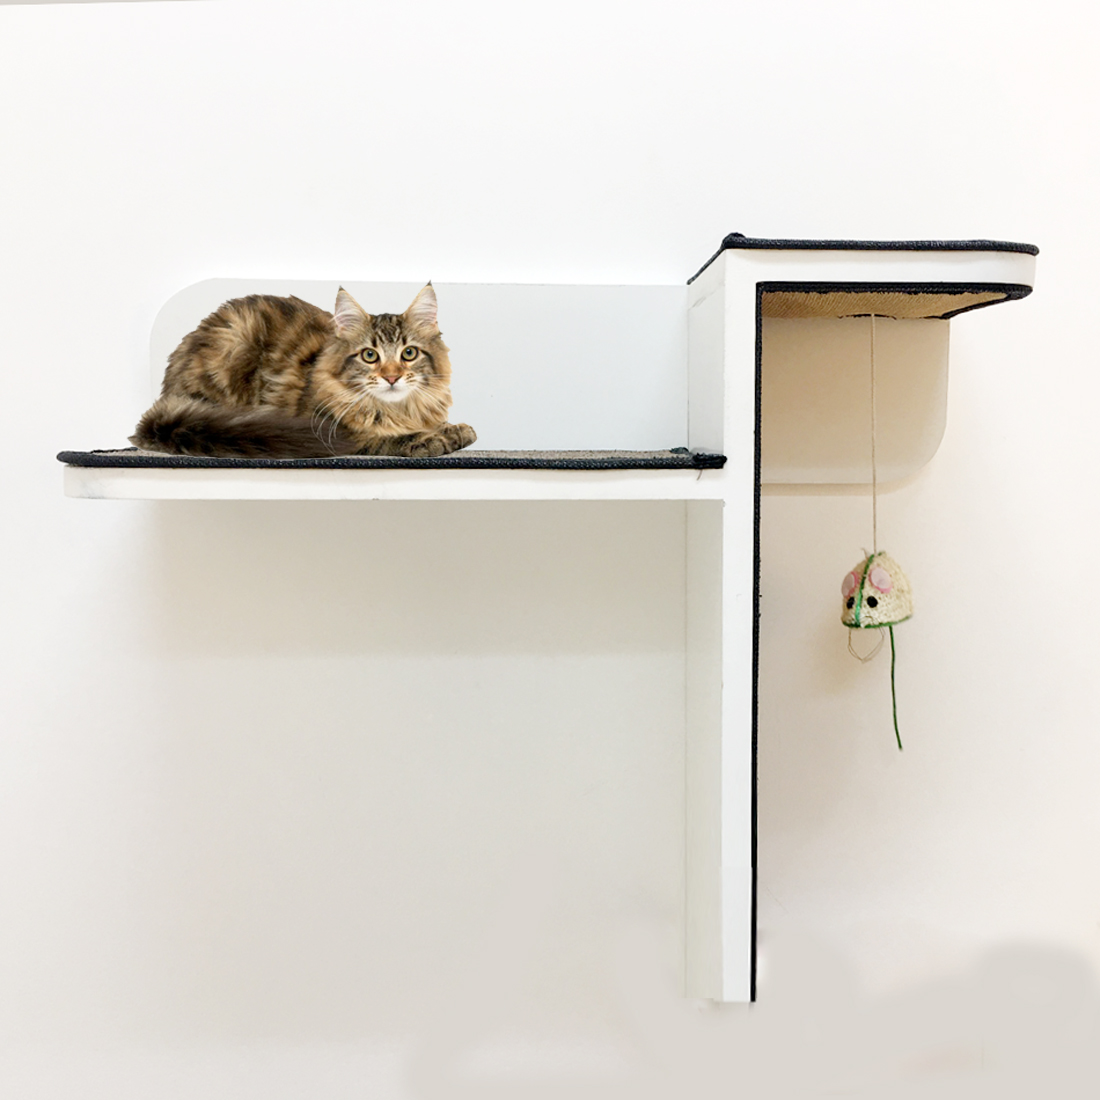 Cat climbing wall shelves best cat shelves for sale in dubaiuae cat climbing shelves dubai amipublicfo Image collections